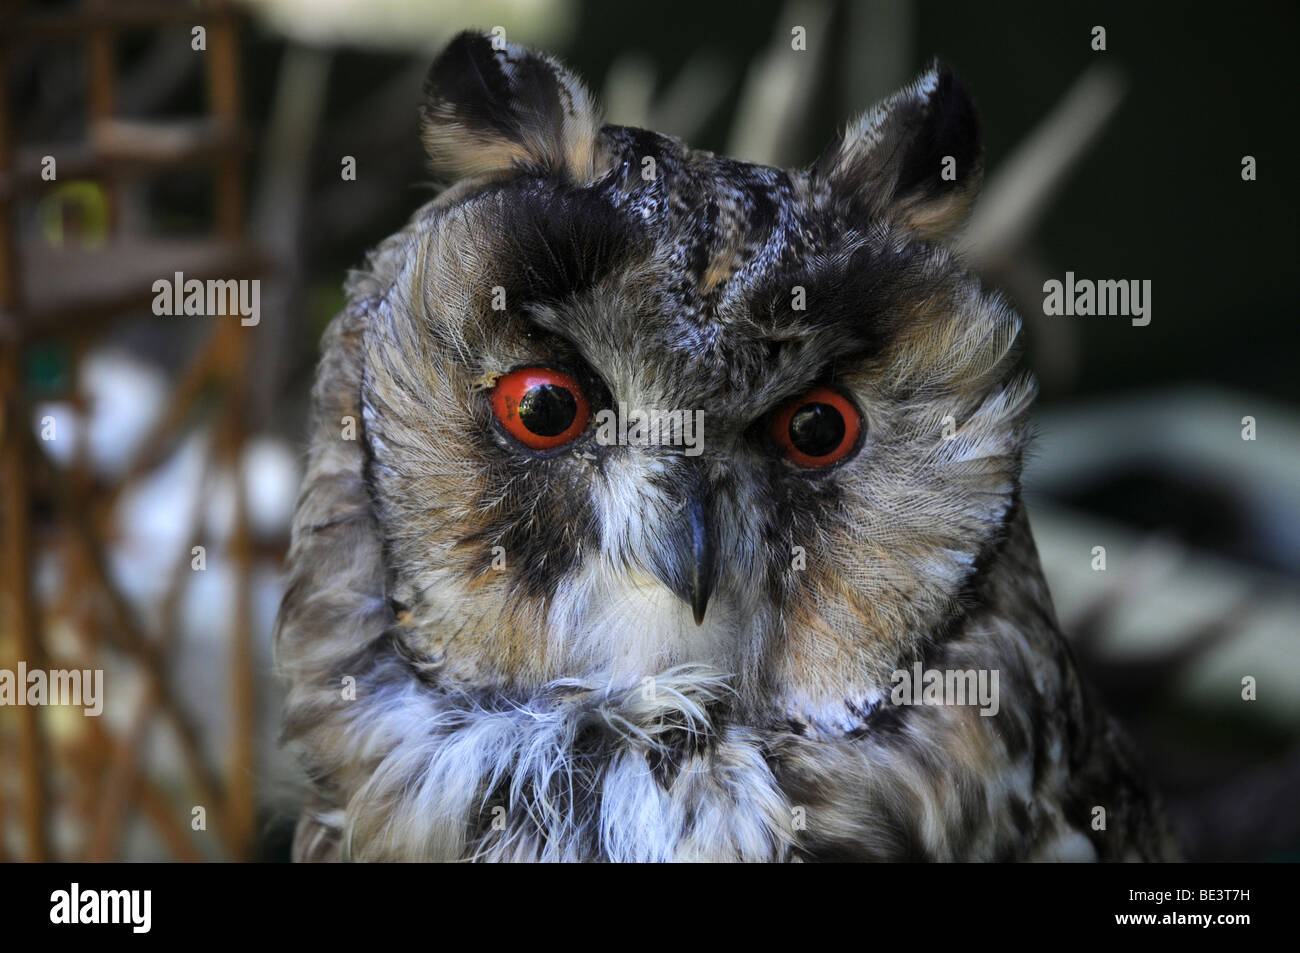 Stuff Owl Owl Taxidermy Stock Photos And Owl Taxidermy Stock Images